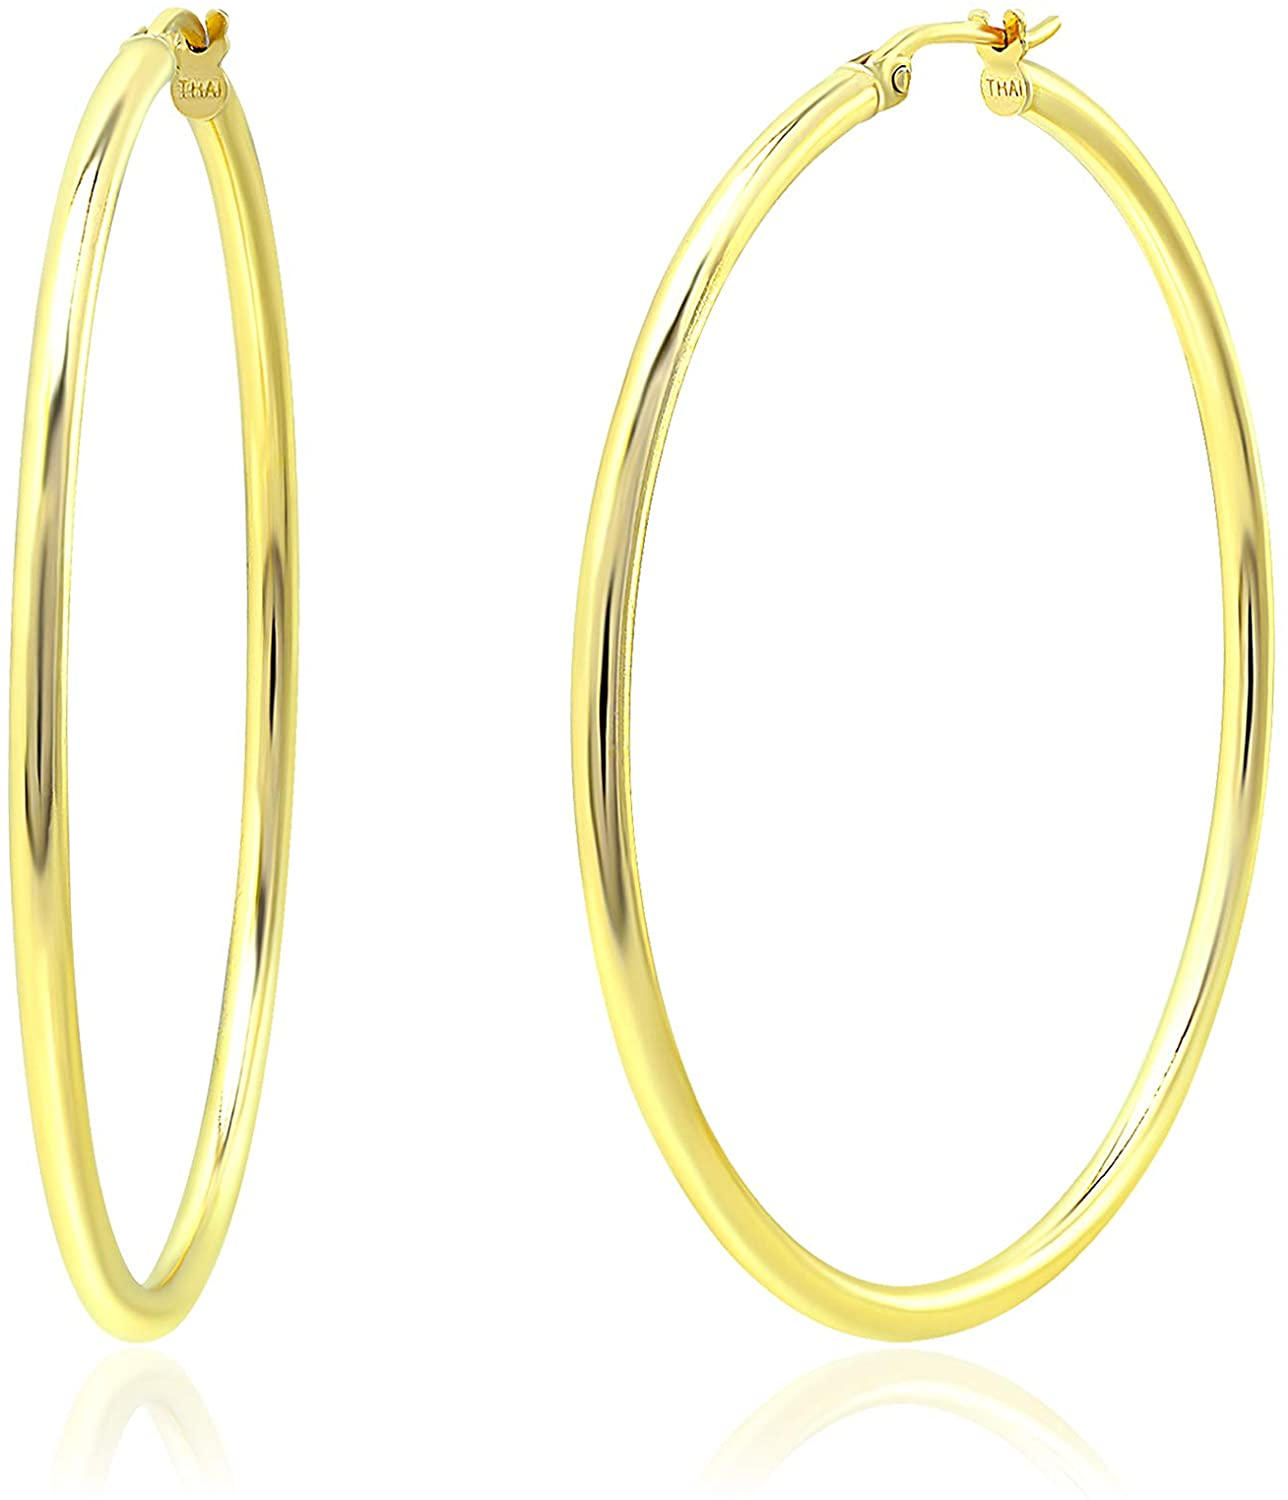 Michael Zweig Gold Flash Plated Sterling Silver Round Hoops Earrings with Click-Top Round Tube Size 2.0 mm Thick